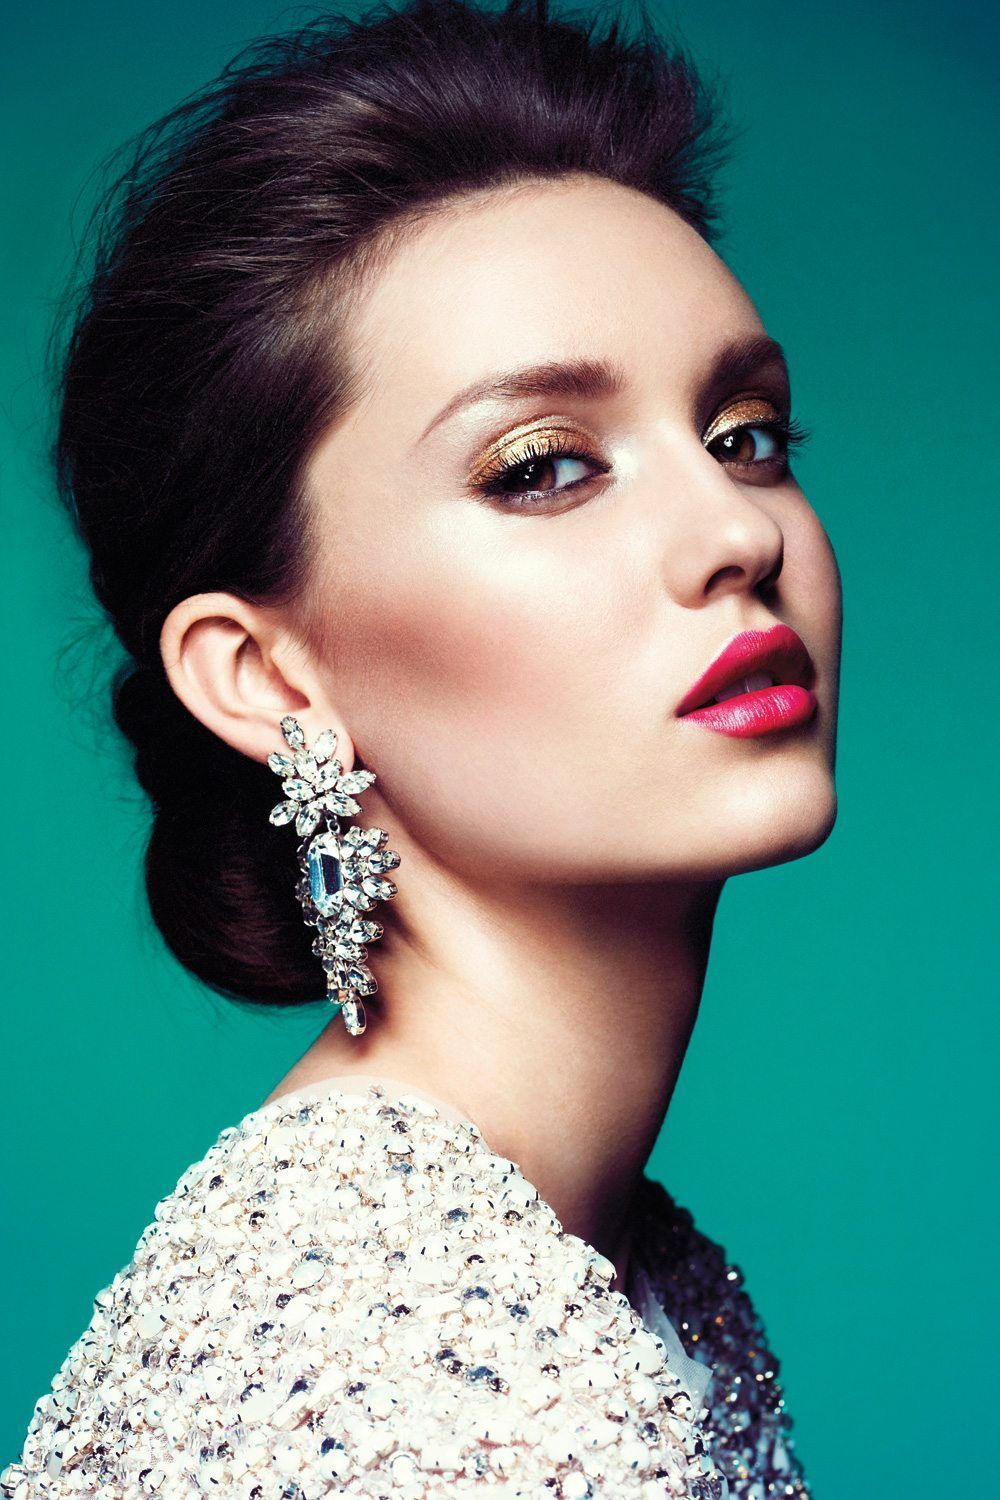 Pin on FW/15 Hair and Makeup Trends